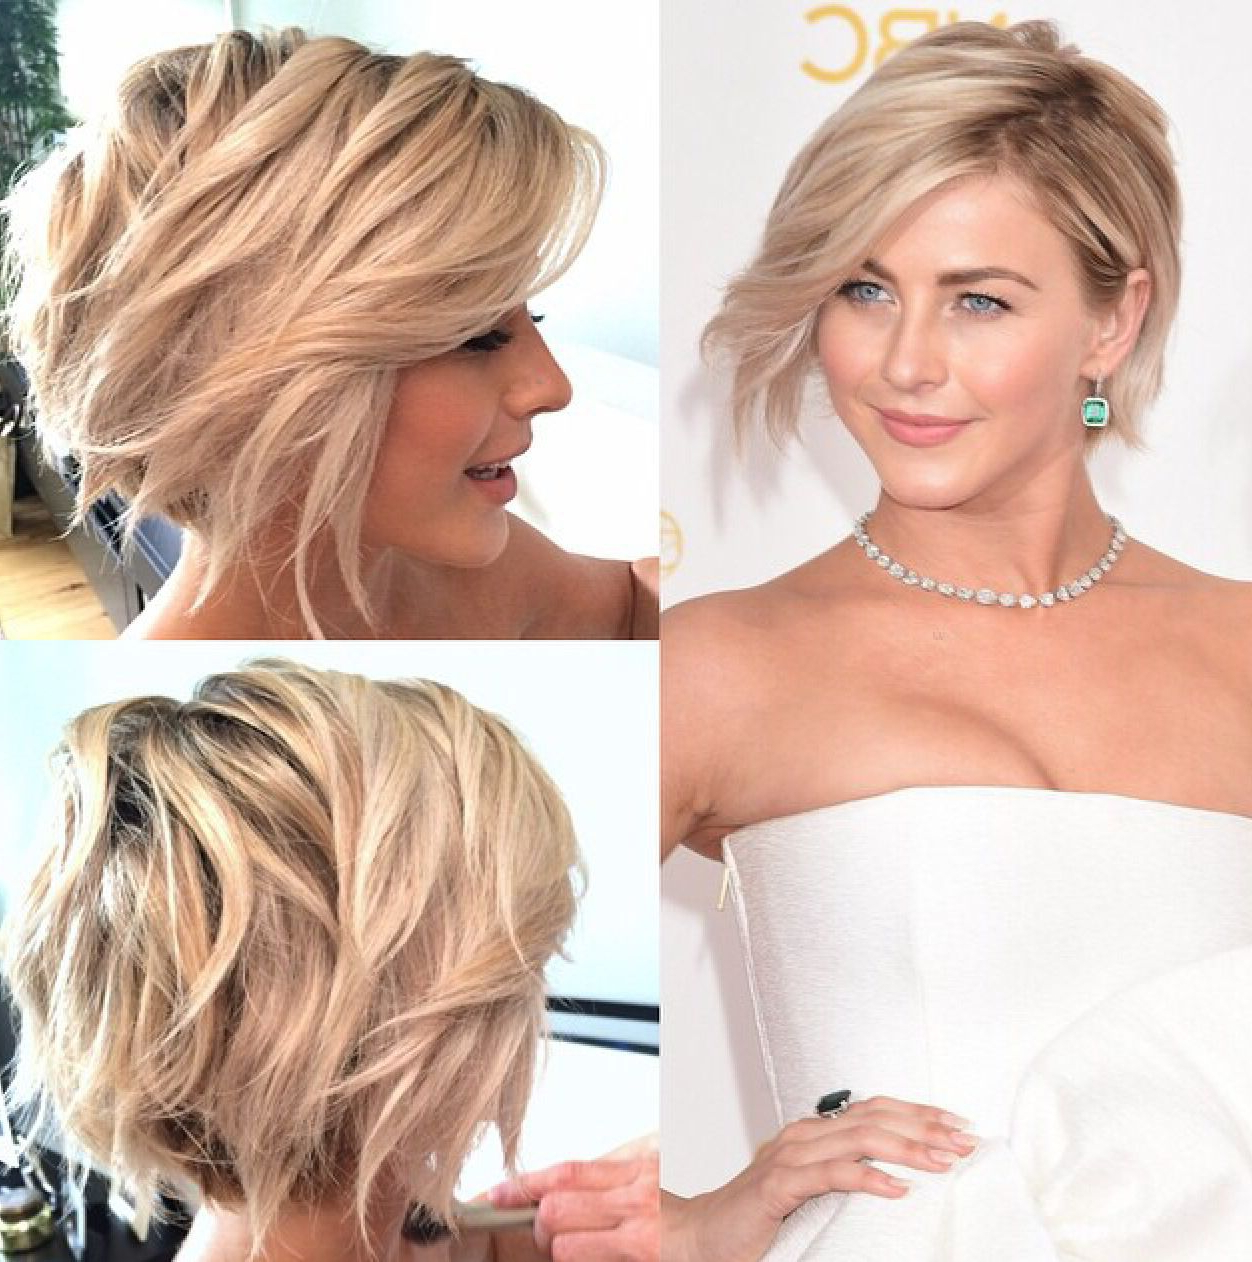 28 Best New Short Layered Bob Hairstyles   Lovely Hairstyles Within Julianne Hough Short Hairstyles (View 15 of 25)